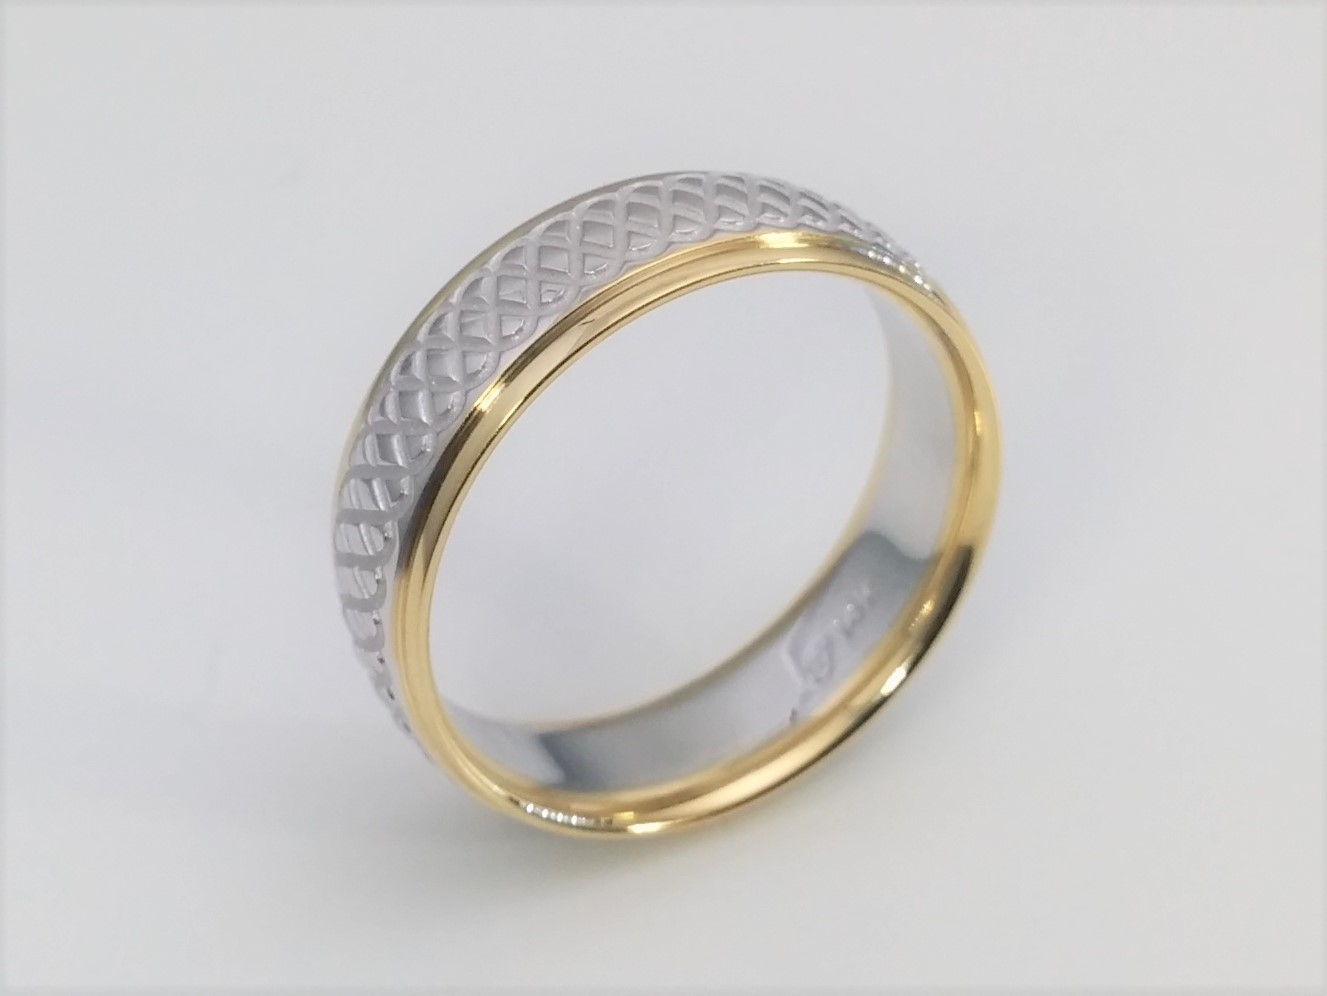 yellow-gold - Wedding Bands from MDC Diamonds